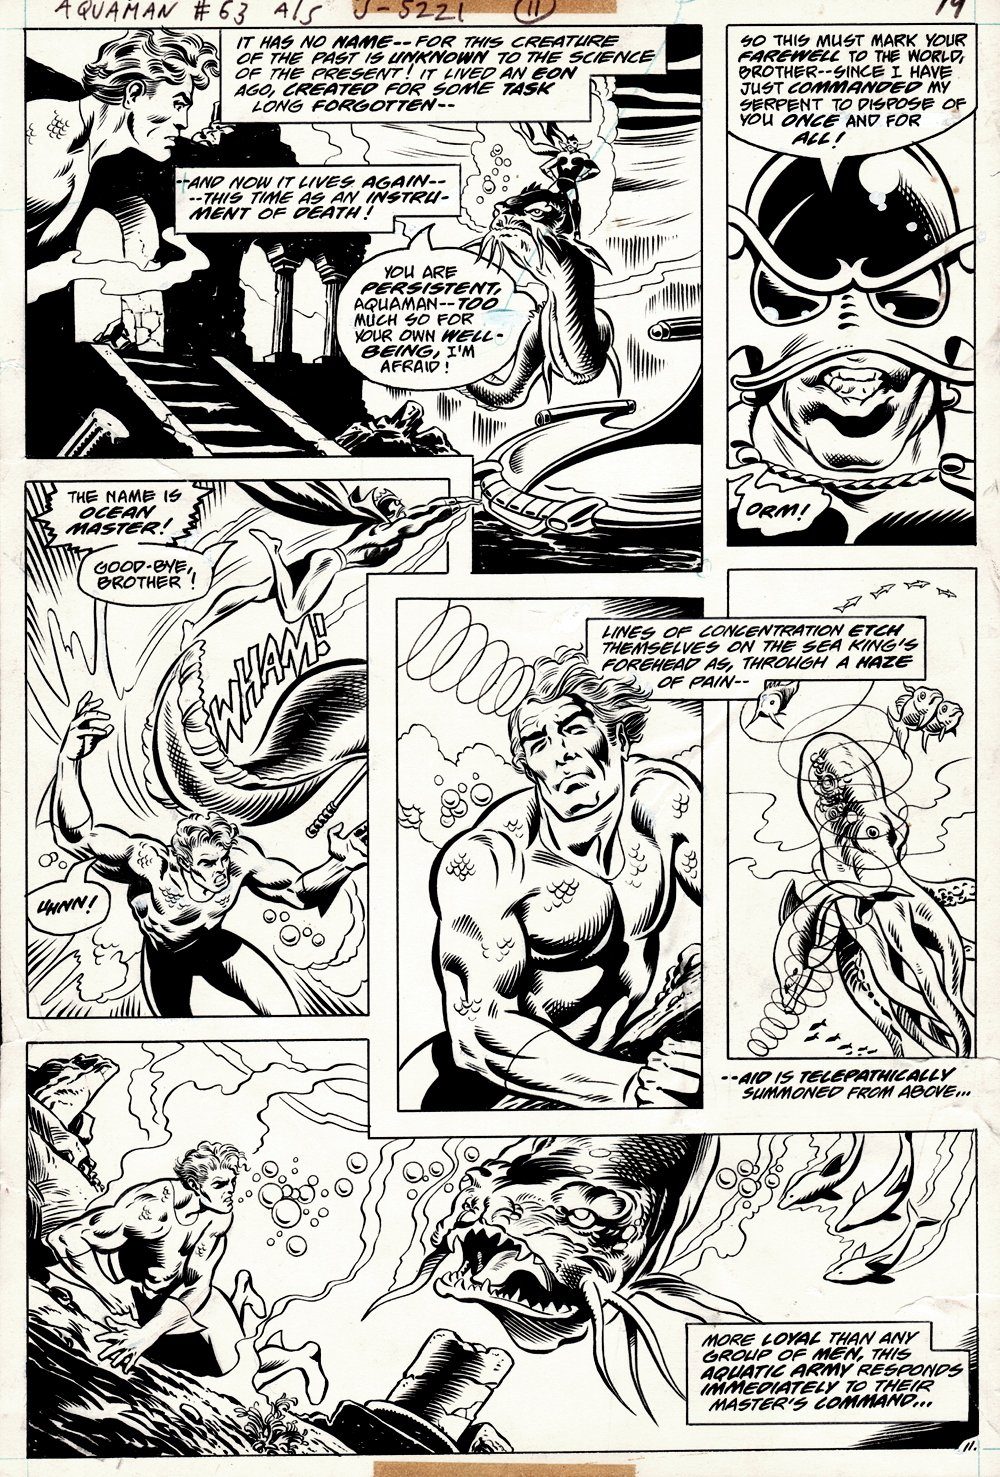 Aquaman #63 p 11 (AQUAMAN BATTLES THE OCEAN MASTER THROUGHOUT!) 1978